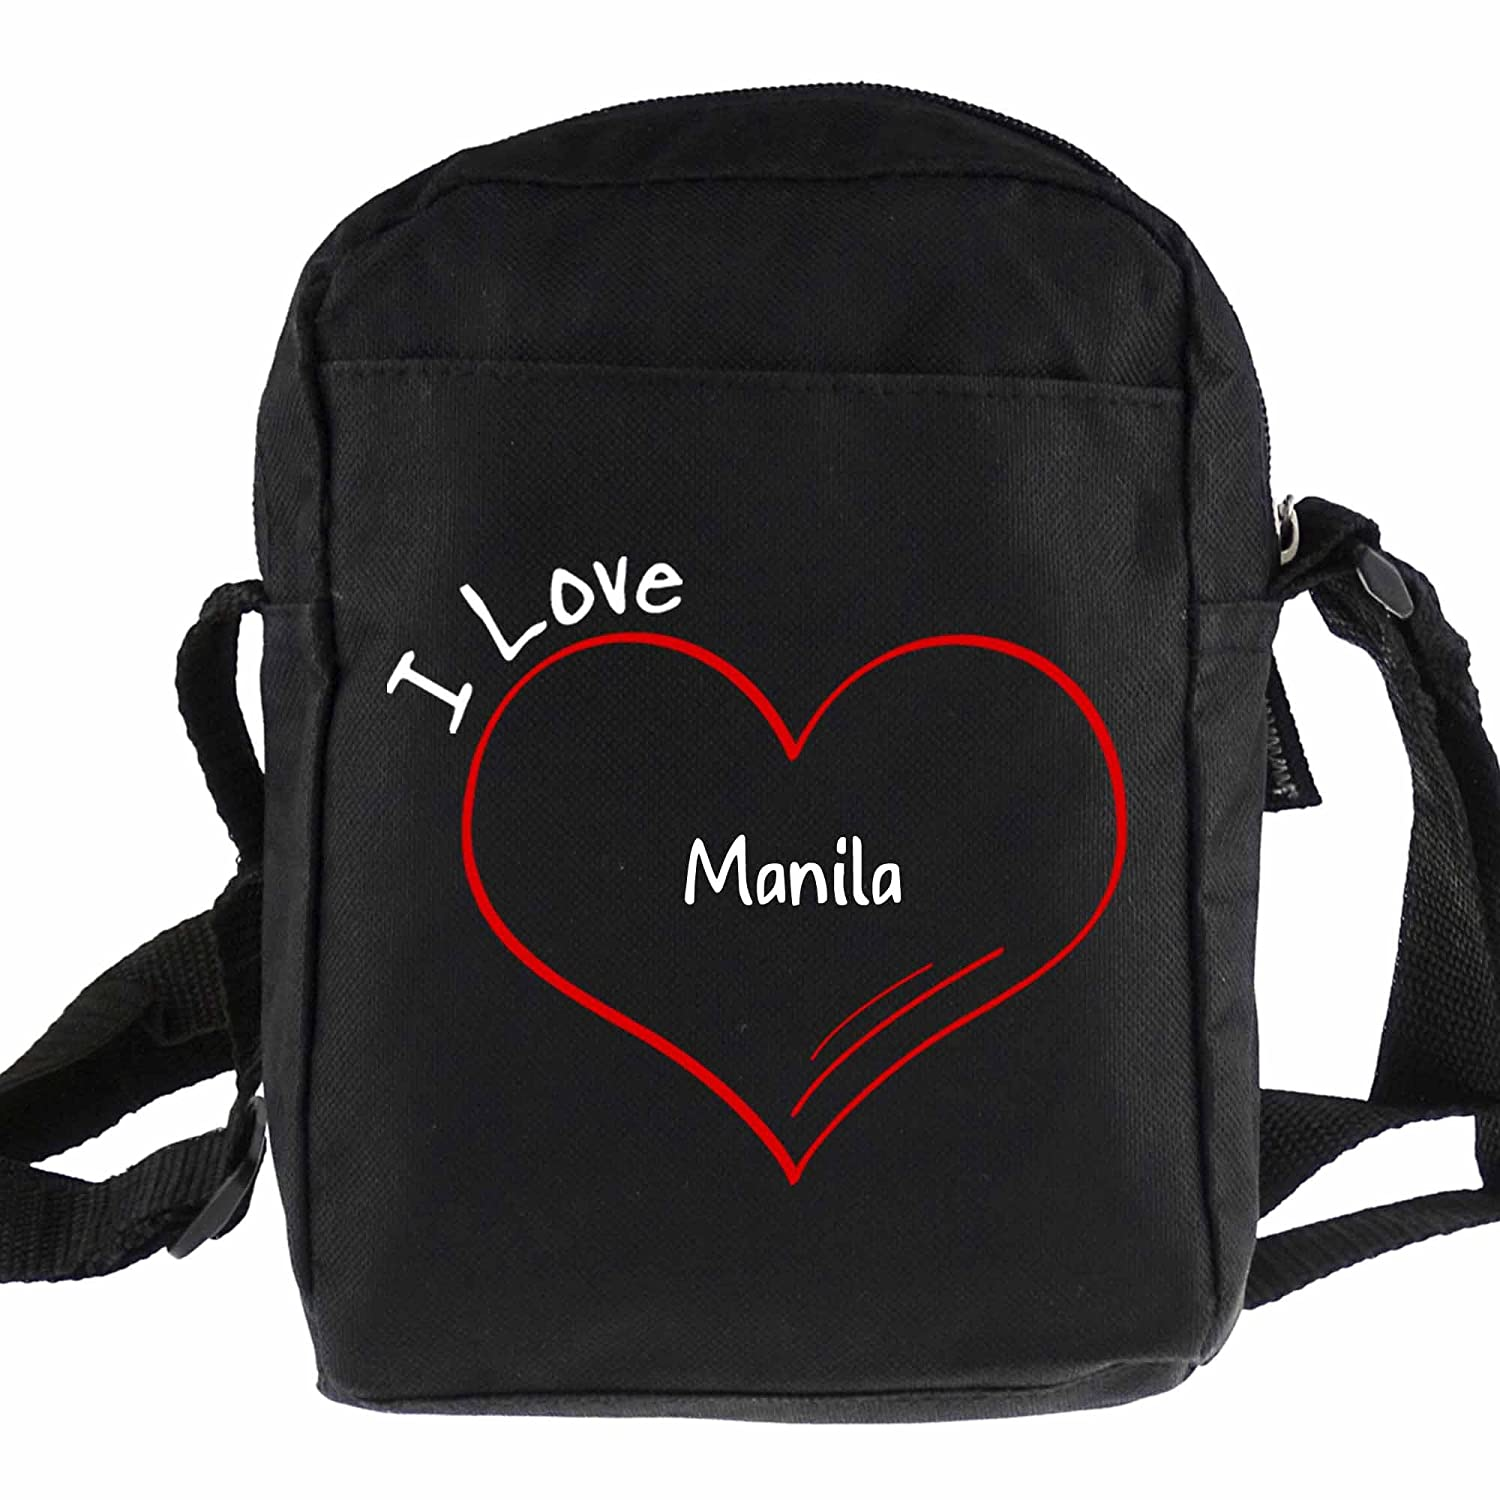 Modern I Love Manila Black Shoulder Bag